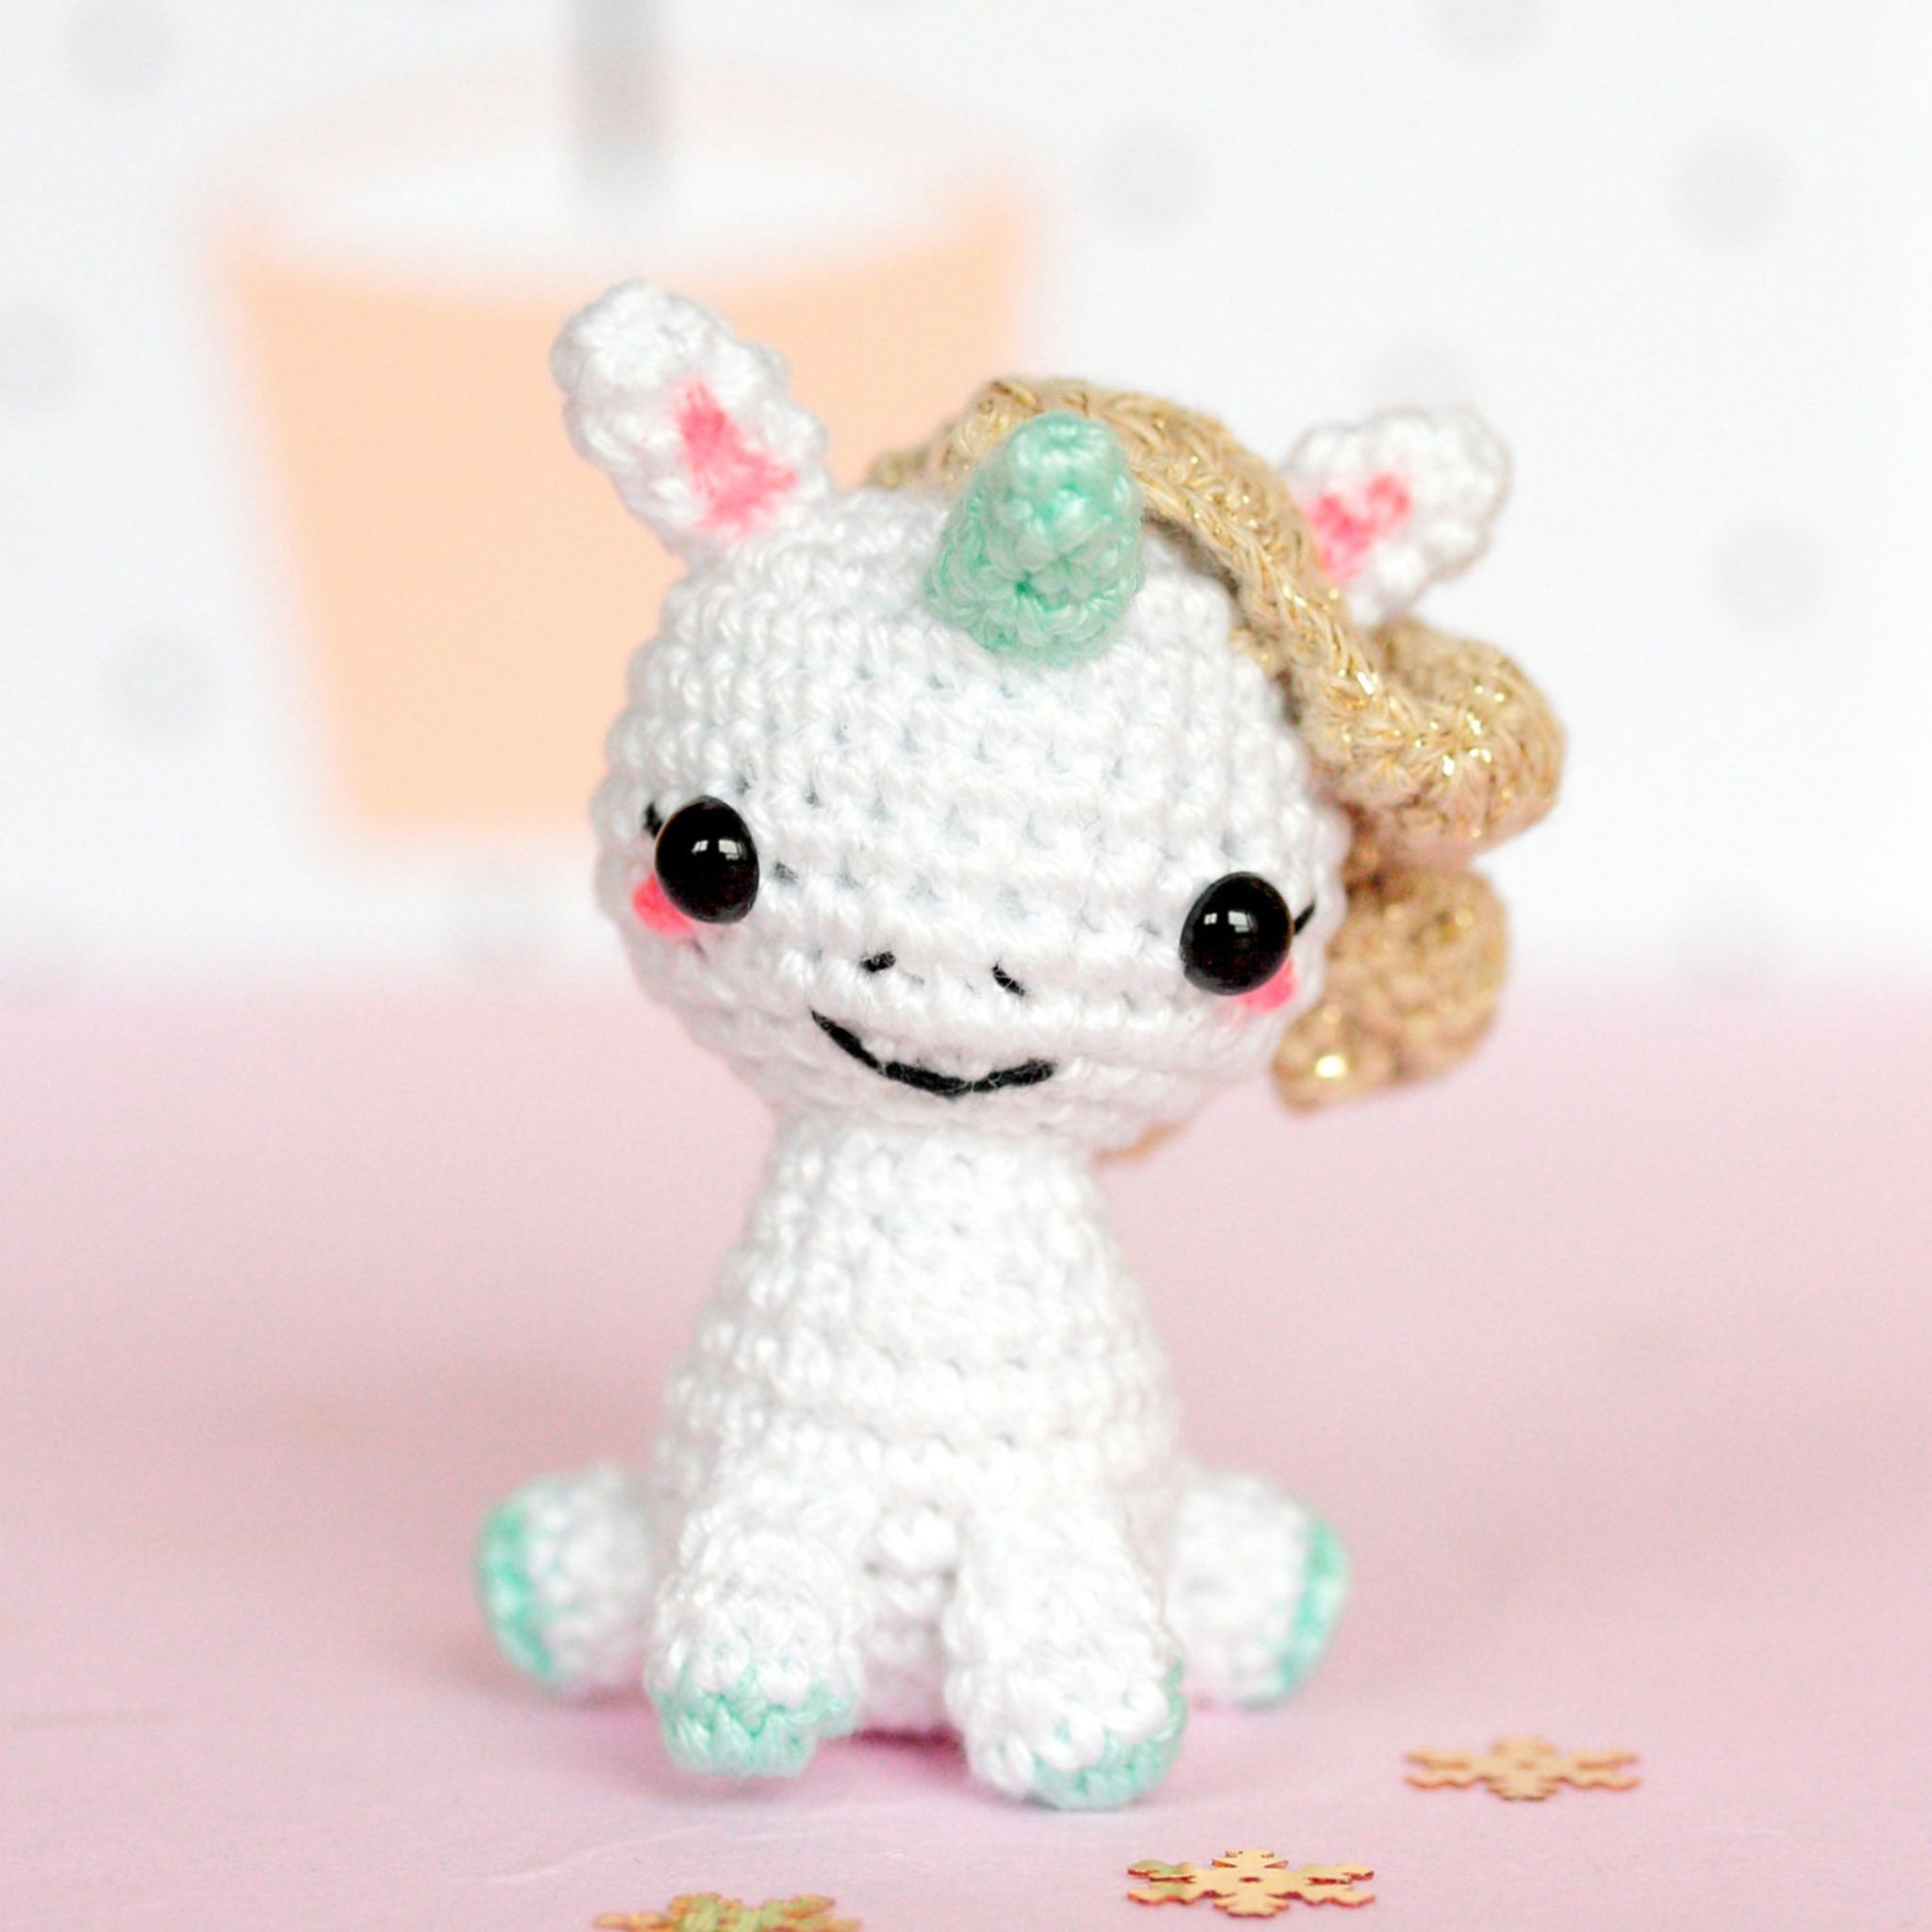 Adorable Unicorn Wallpaper | WALPAPERS | Pinterest